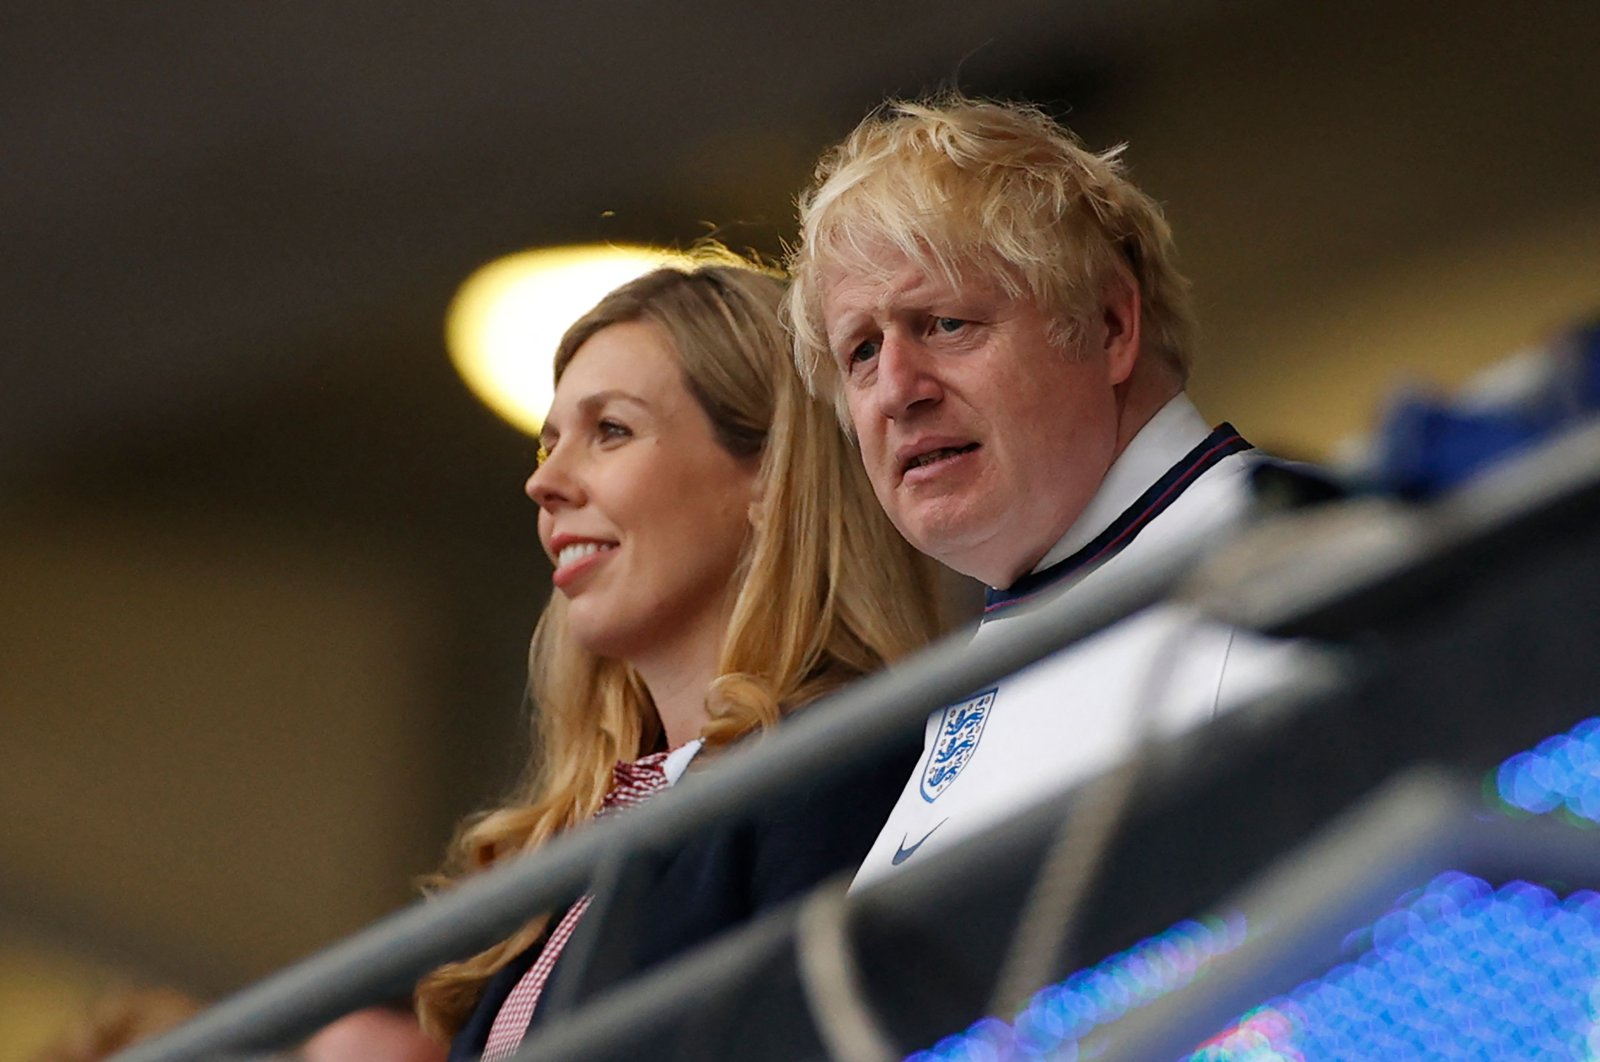 Britain's Prime Minister Boris Johnson (R) and wife Carrie take their seats ahead of the UEFA Euro 2020 final football match between Italy and England at the Wembley Stadium in London on July 11, 2021. (AFP Photo)